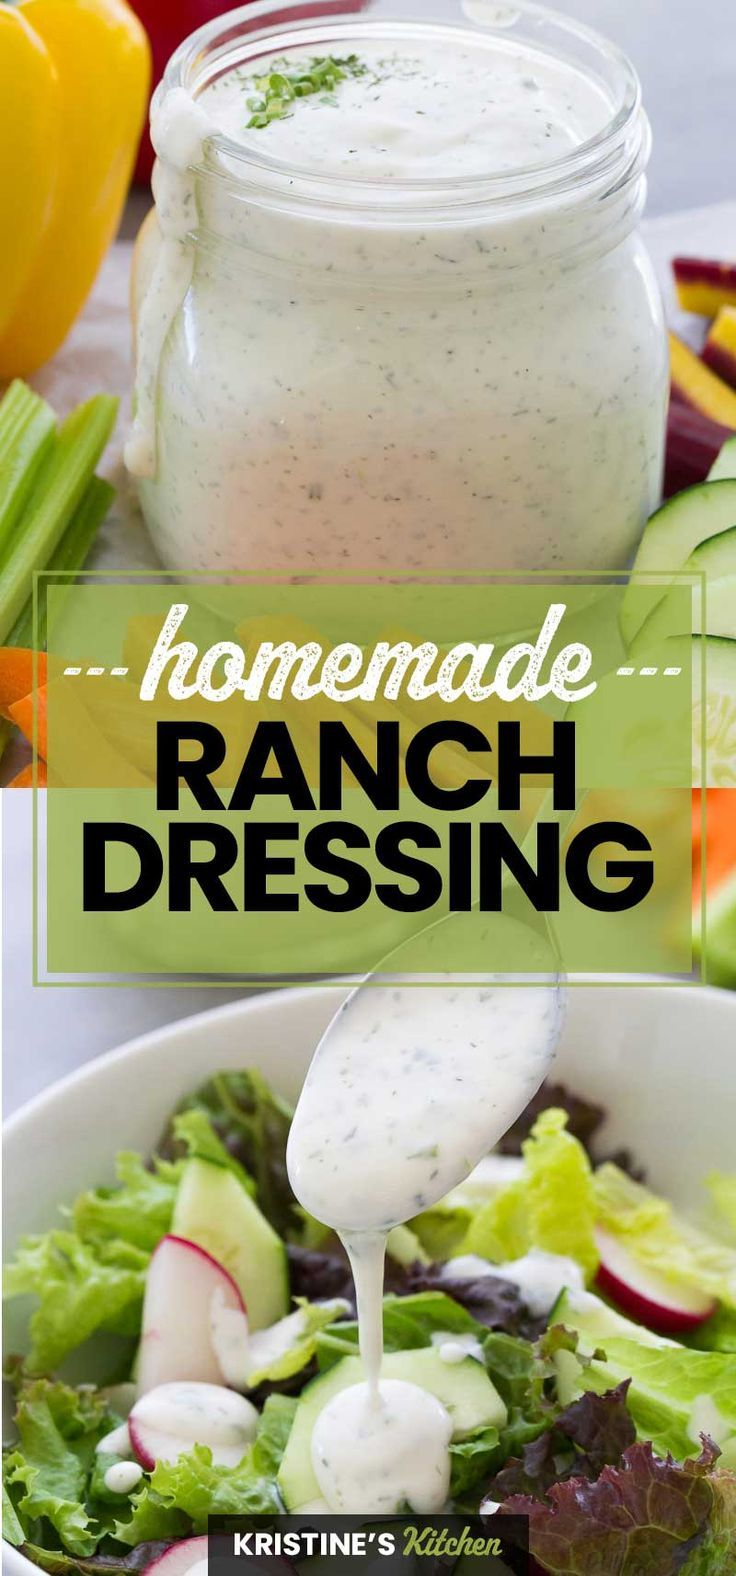 Homemade Ranch Dressing In 2020 Homemade Ranch Dressing Homemade Ranch Ranch Dressing